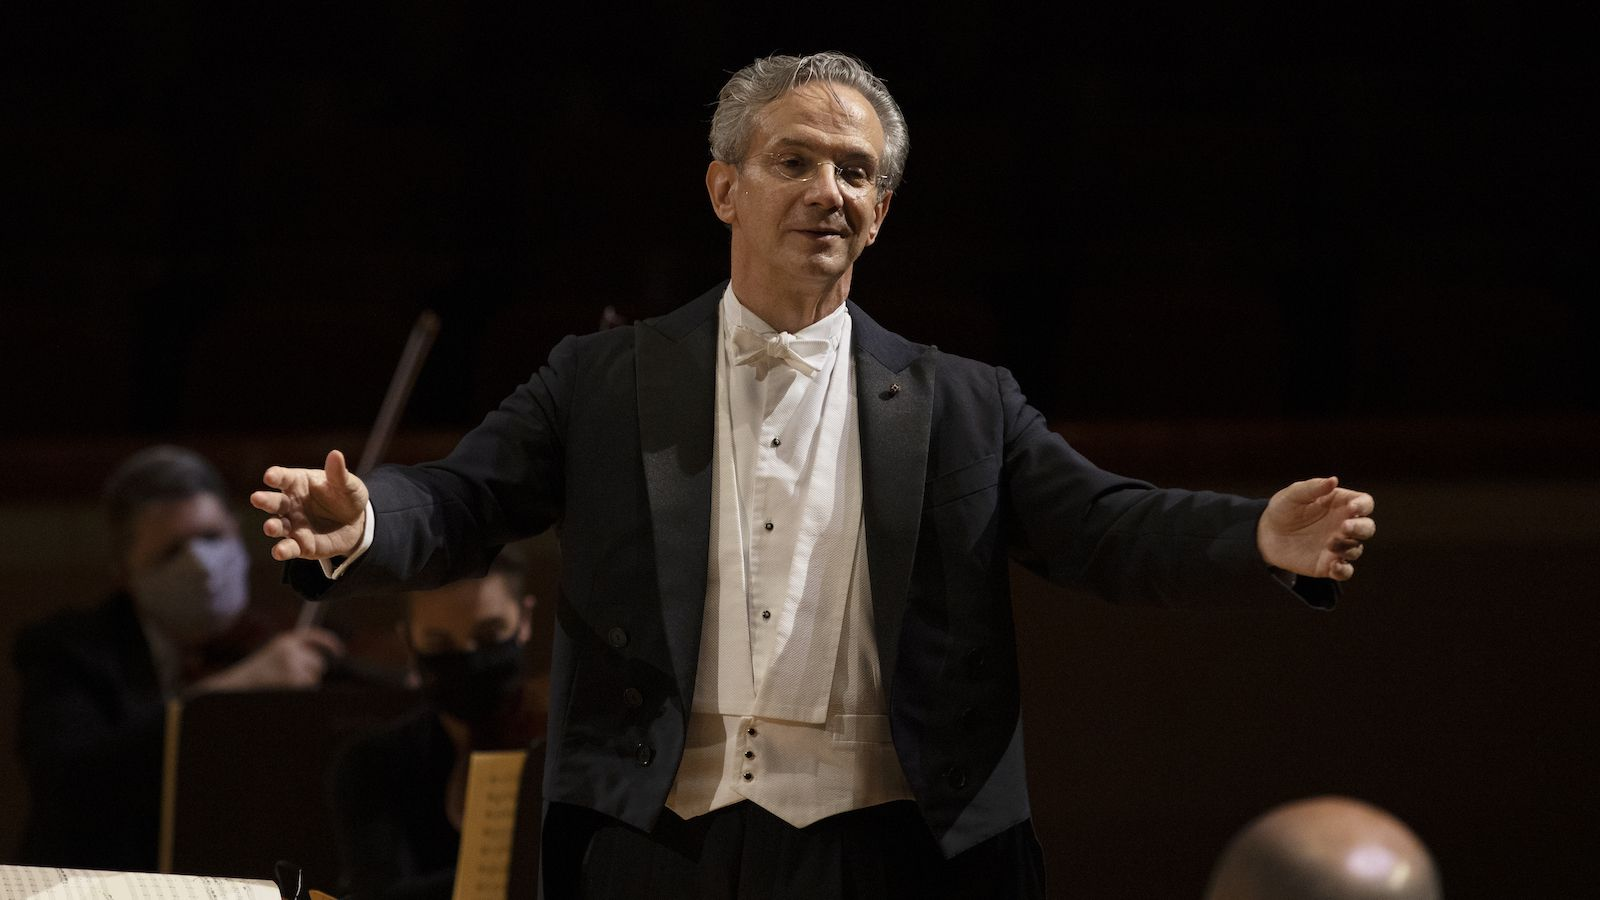 Fabio Luisi has faced many challenges over the past few months as  the new music director of the Dallas Symphony Orchestra, but his passion for music has ignited a brand-new vision for fall, curated specifically for the Dallas-Fort Worth community.